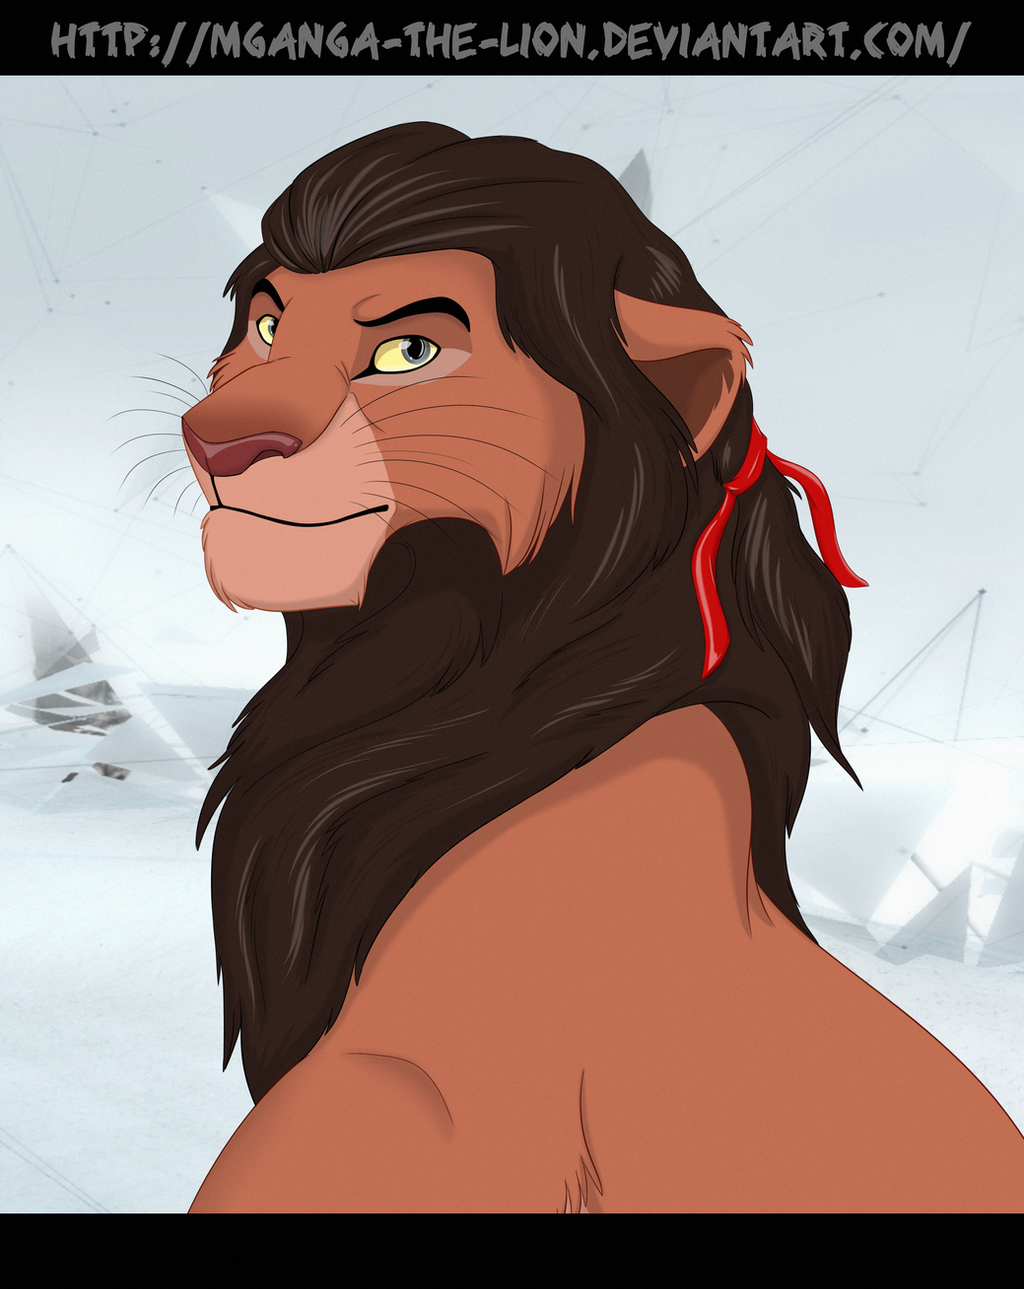 Haytham_lion by Mganga-The-Lion